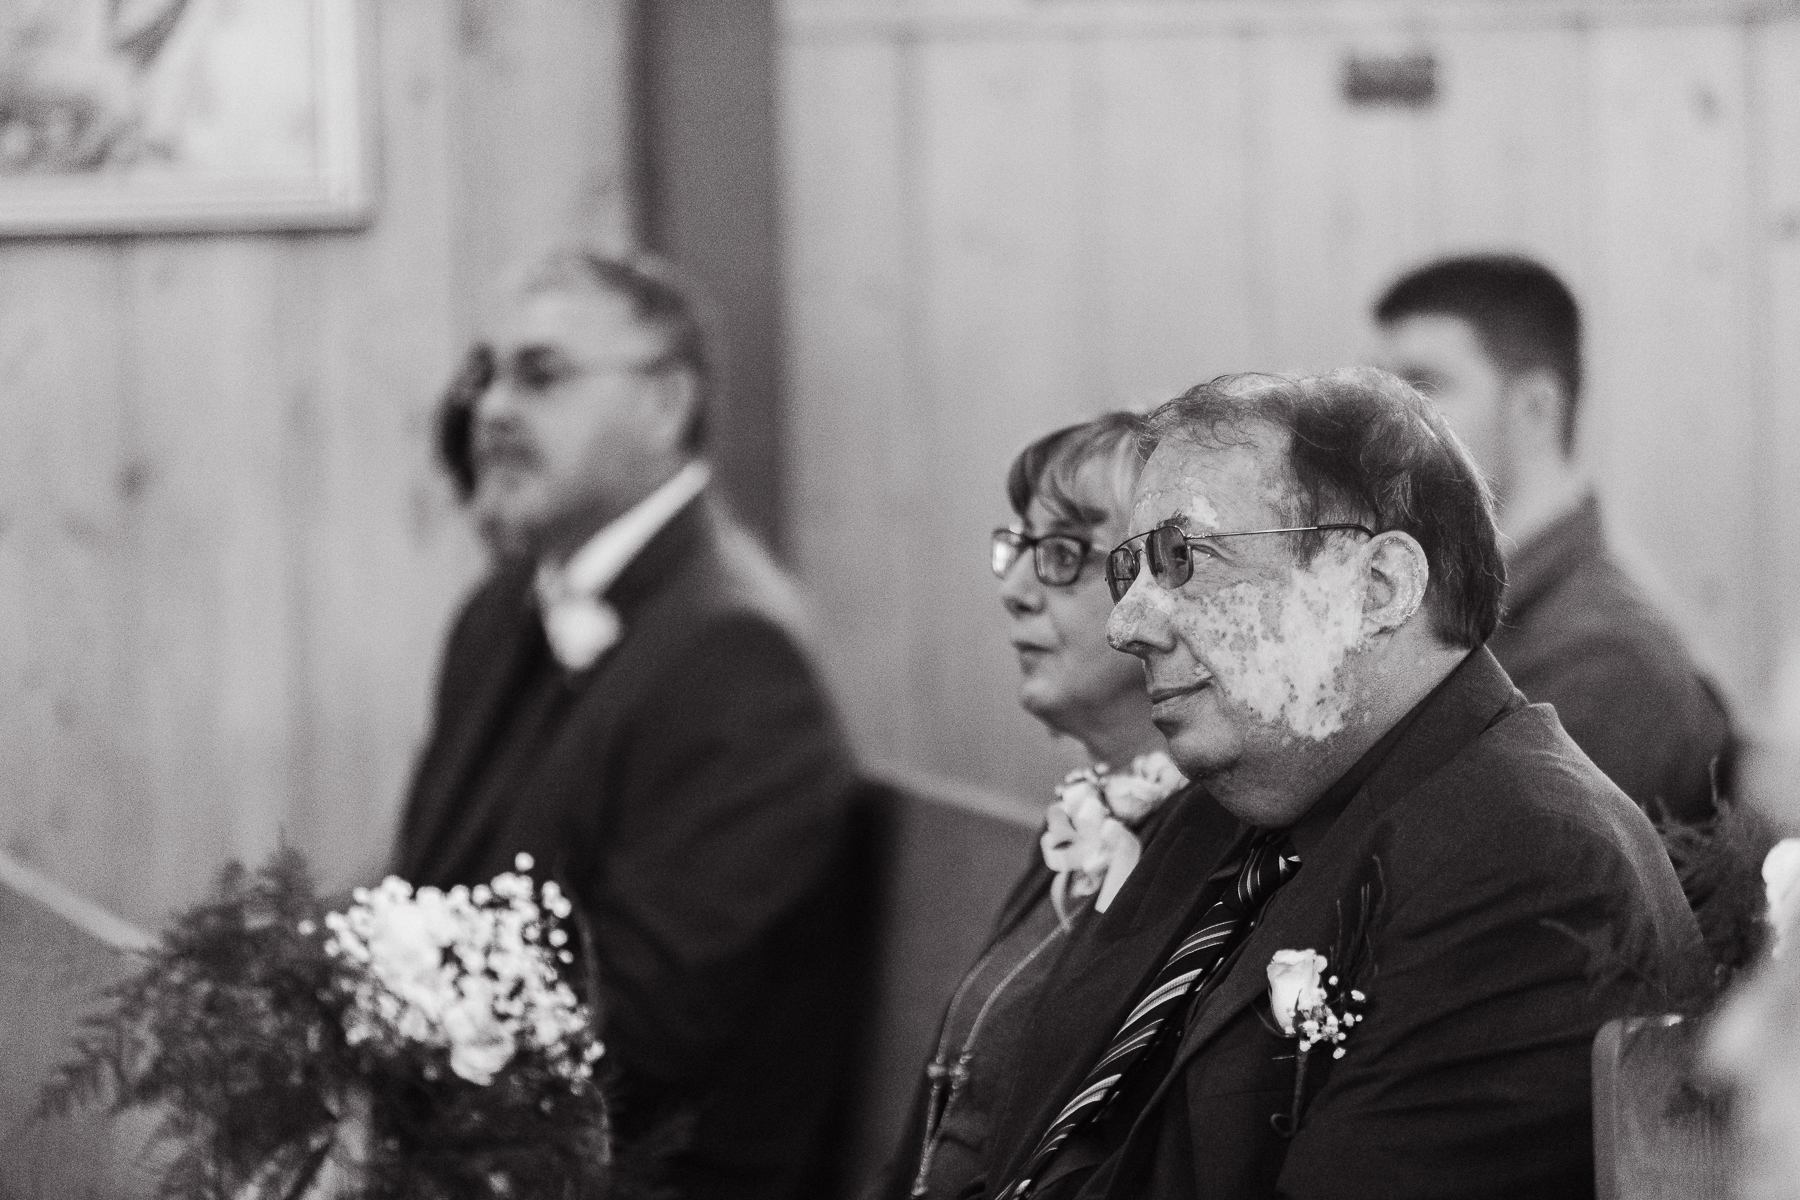 Wedding at Our Lady Peace in Pinedale, Wyoming by Megan Lee Photography